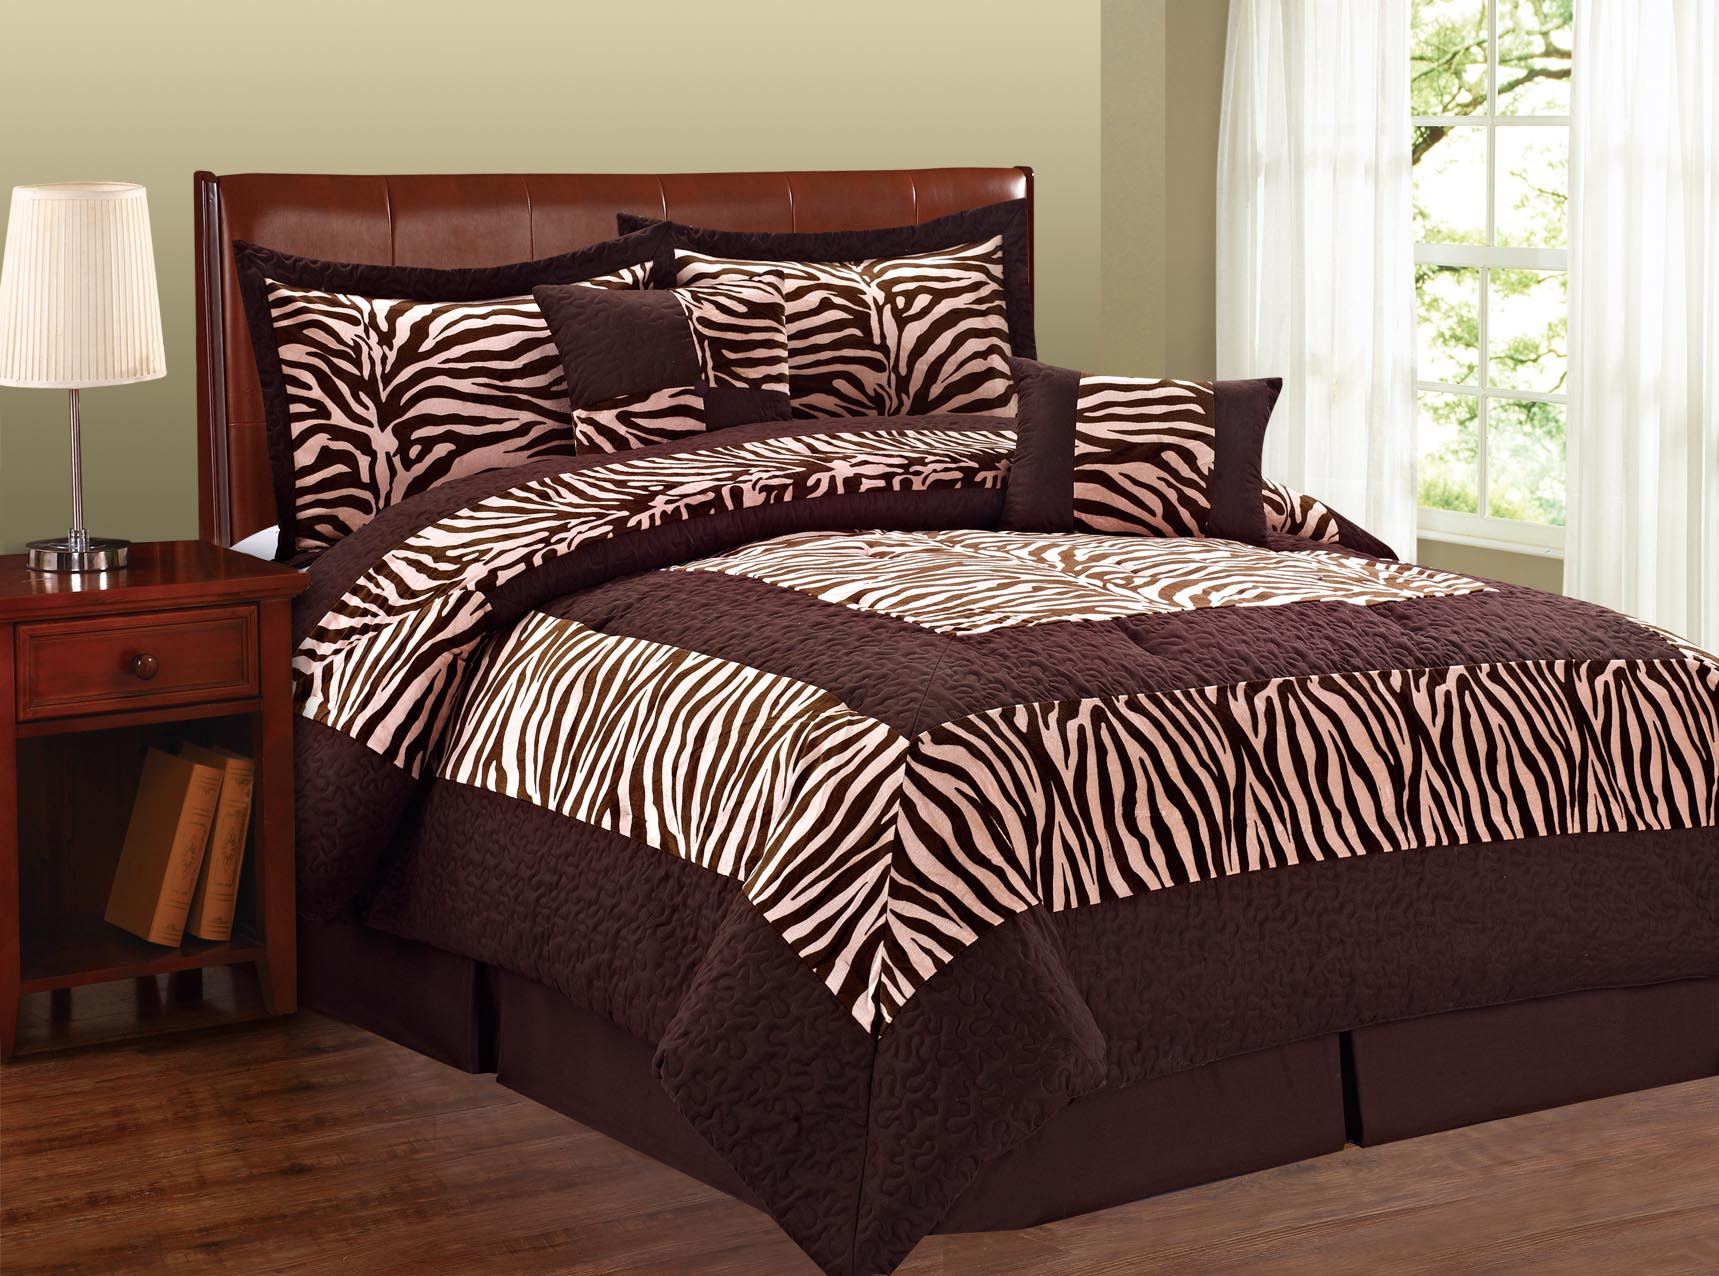 the gallery for gt zebra print bedding